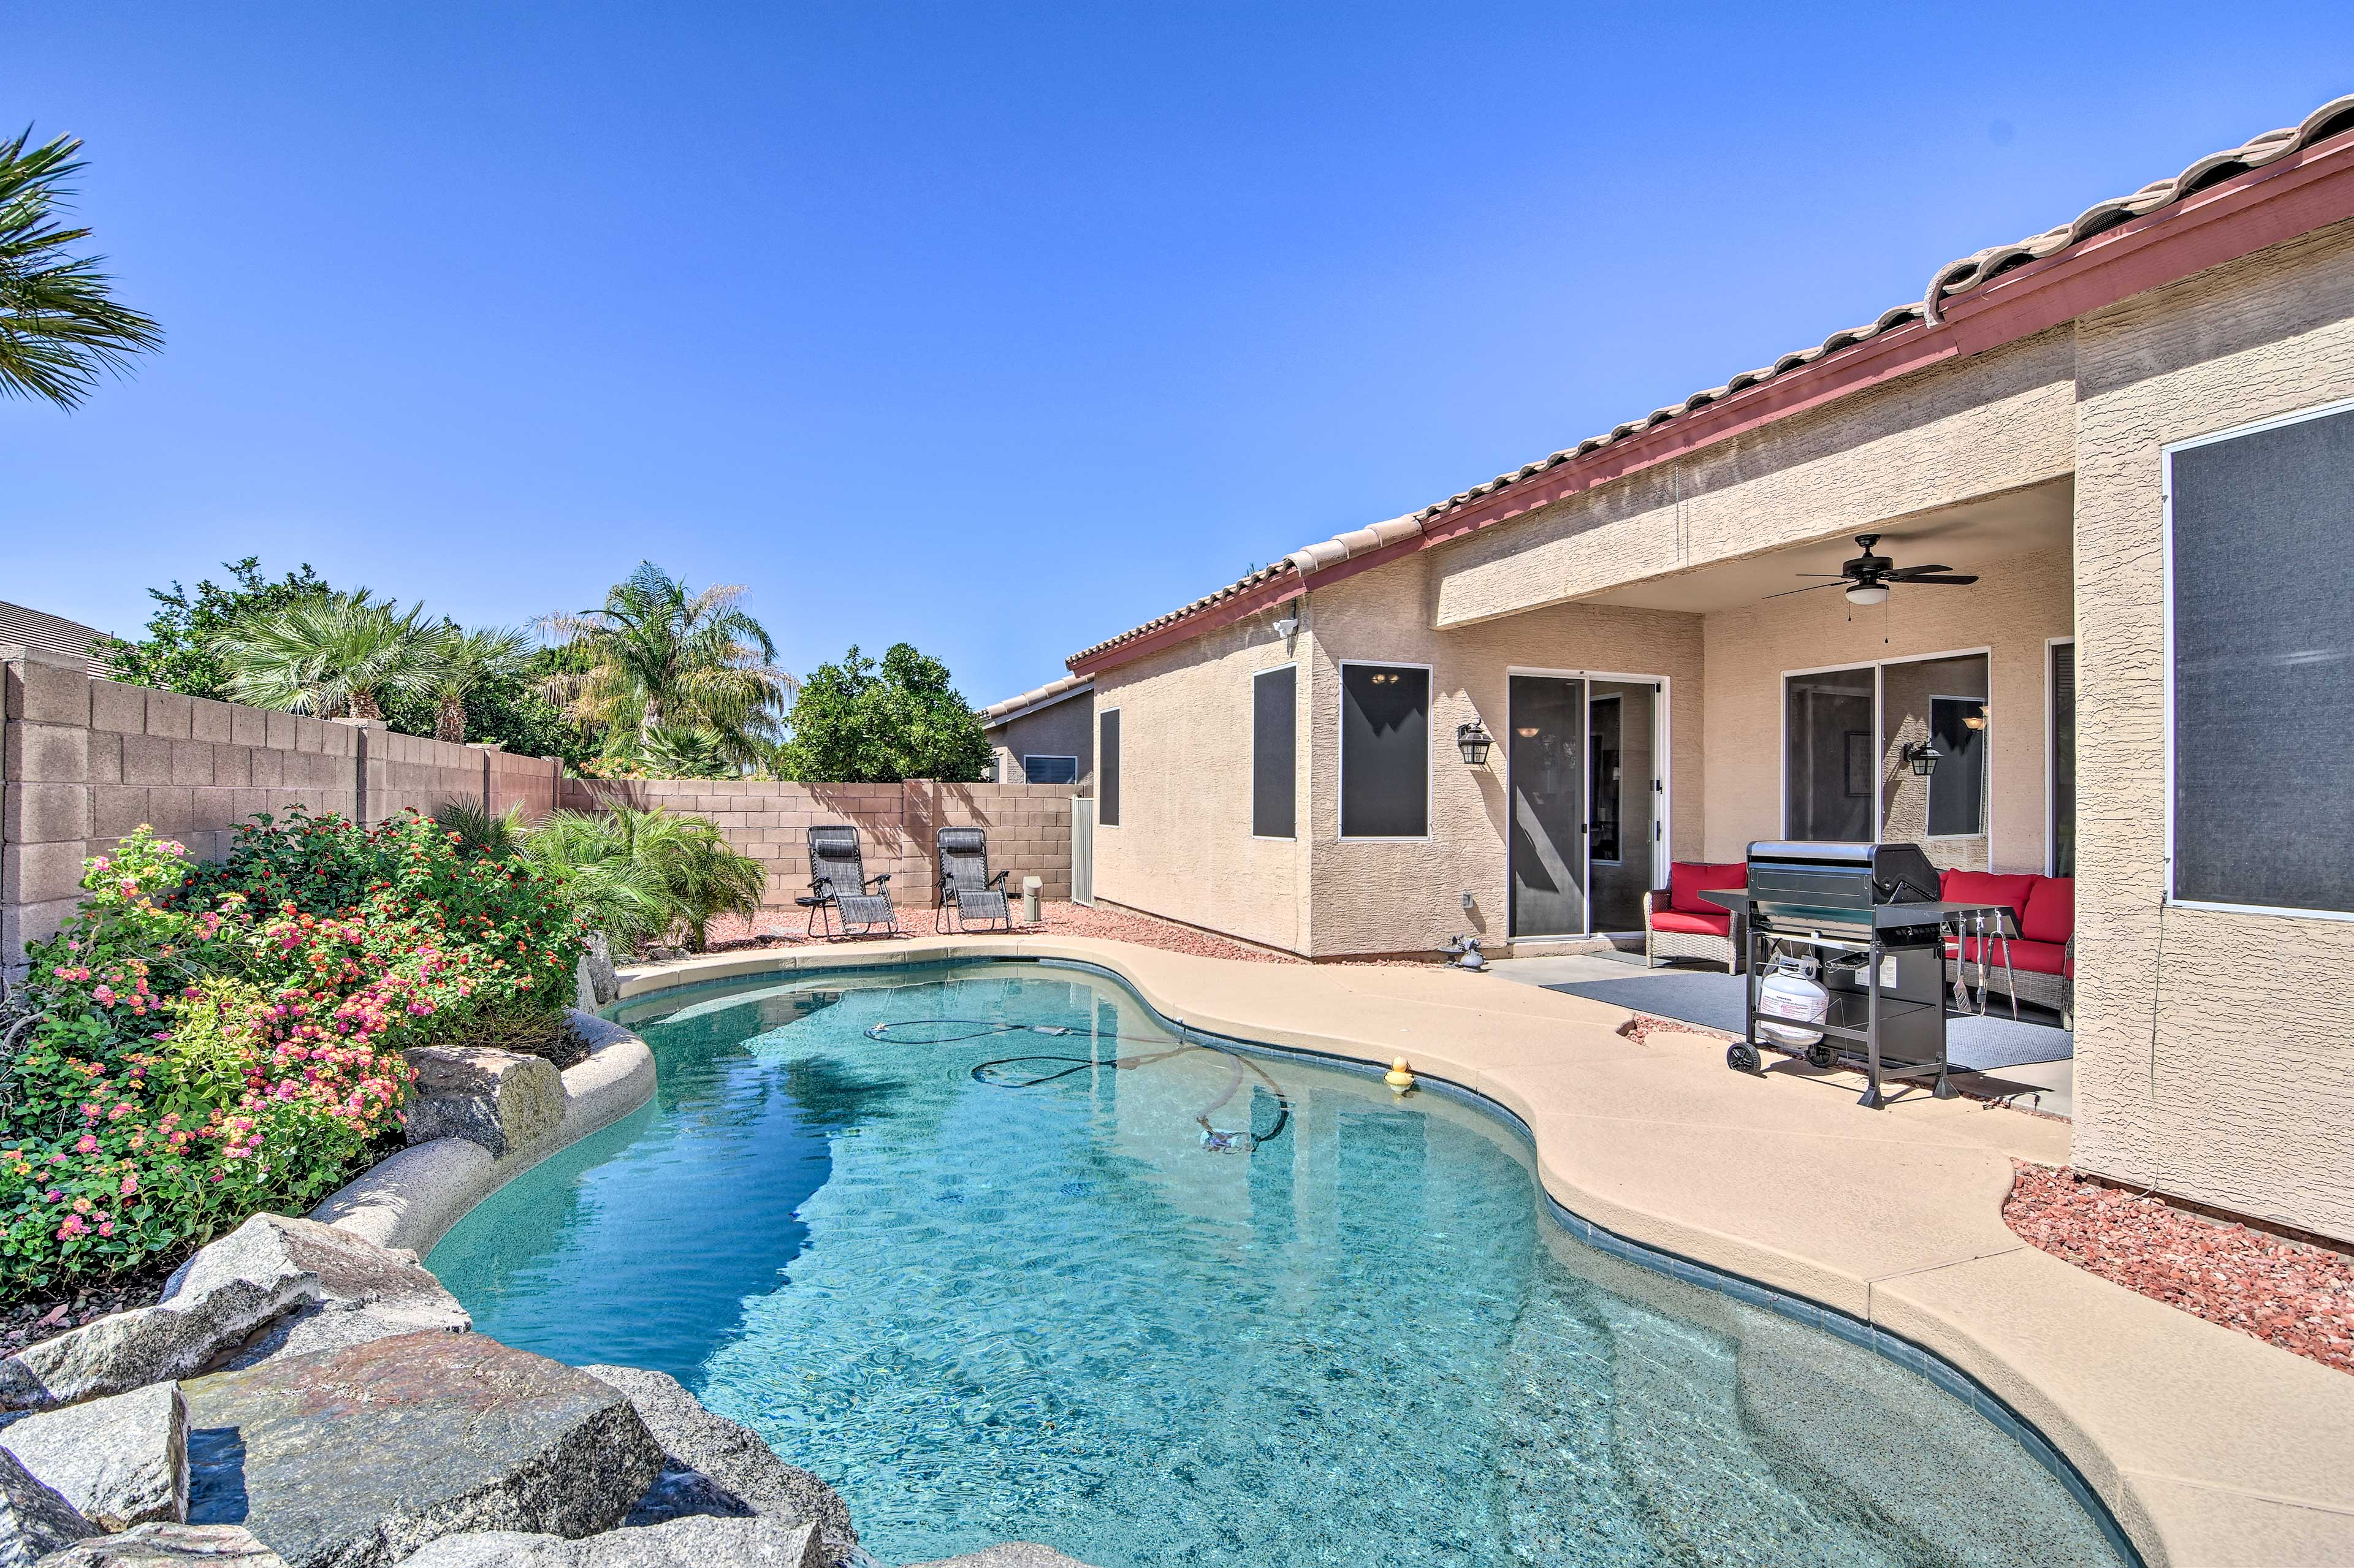 Come stay at this 3-bedroom, 2-bathroom home in Mesa!